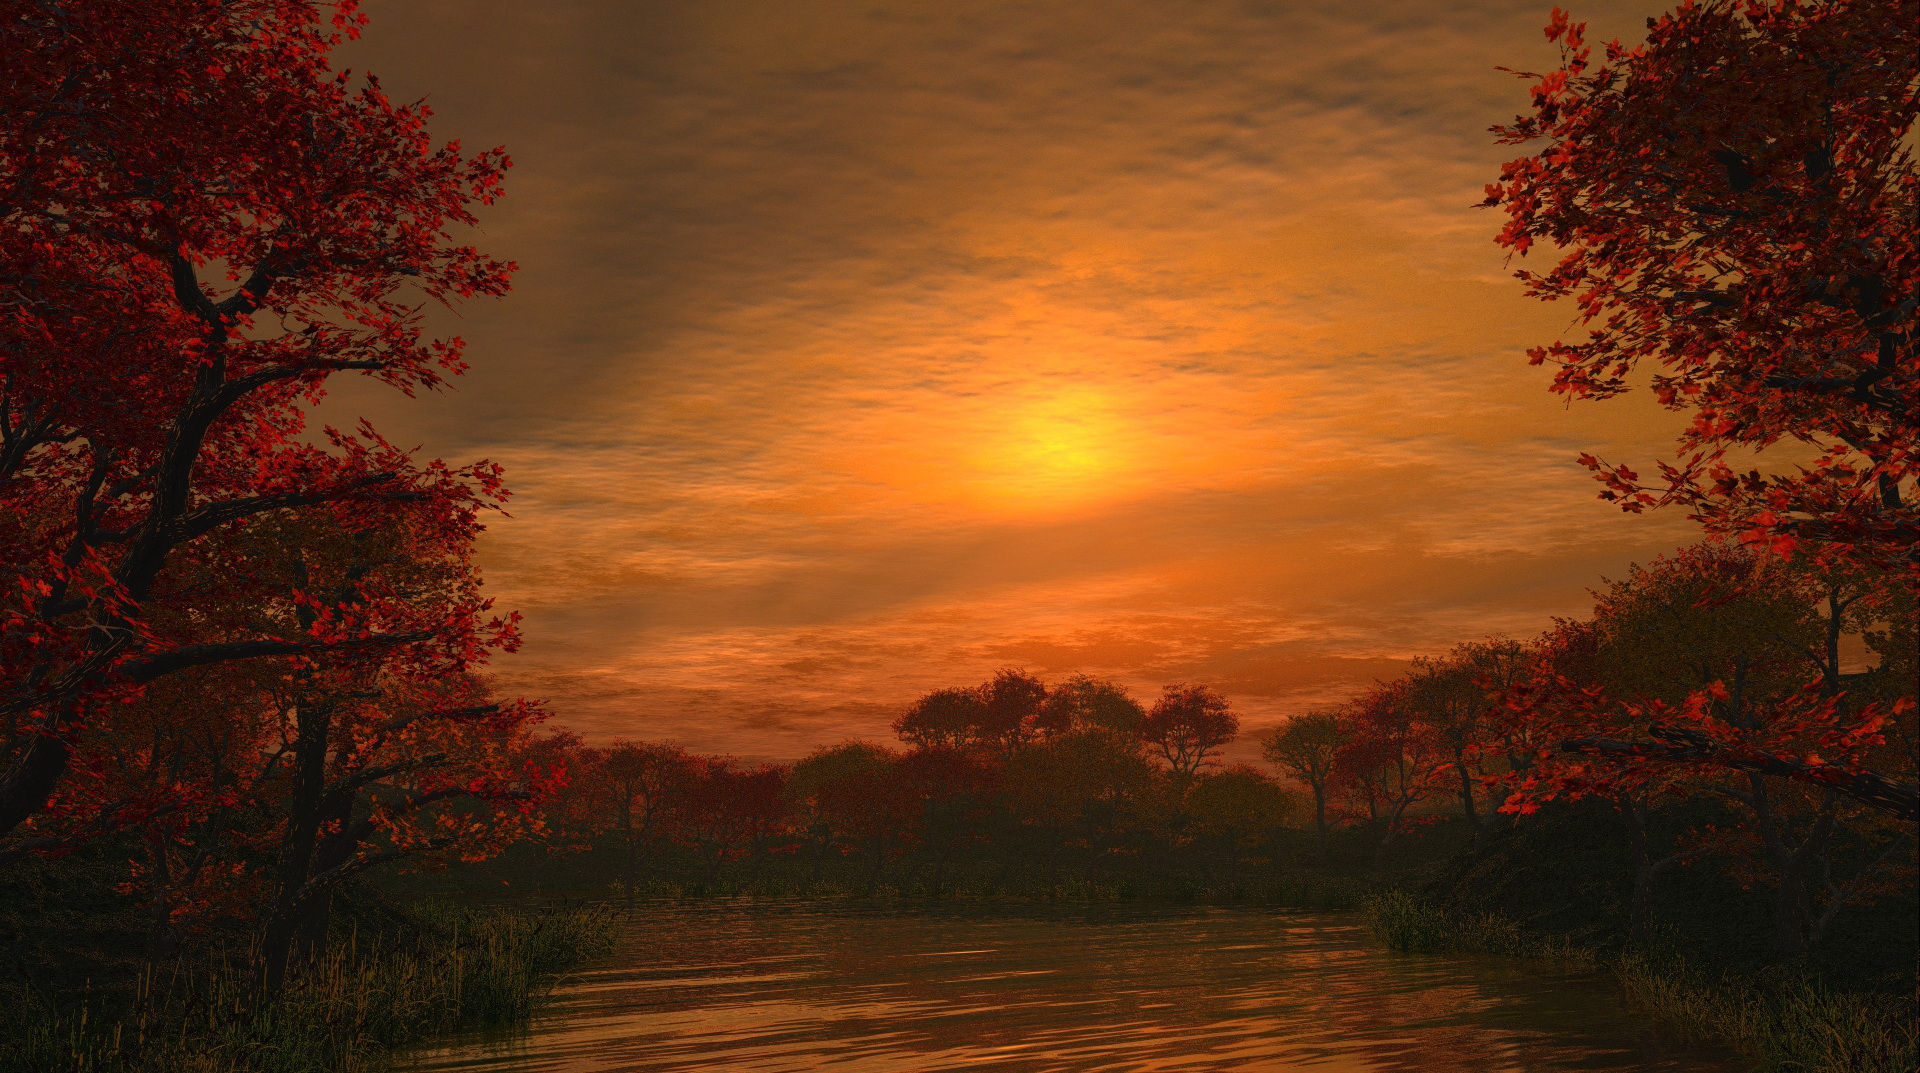 click to free download the wallpaper--natural scene photos - Maples Trees Alongside the Peaceful River, the Rising Sun, an Impressive Scene 1920X1080 free wallpaper download